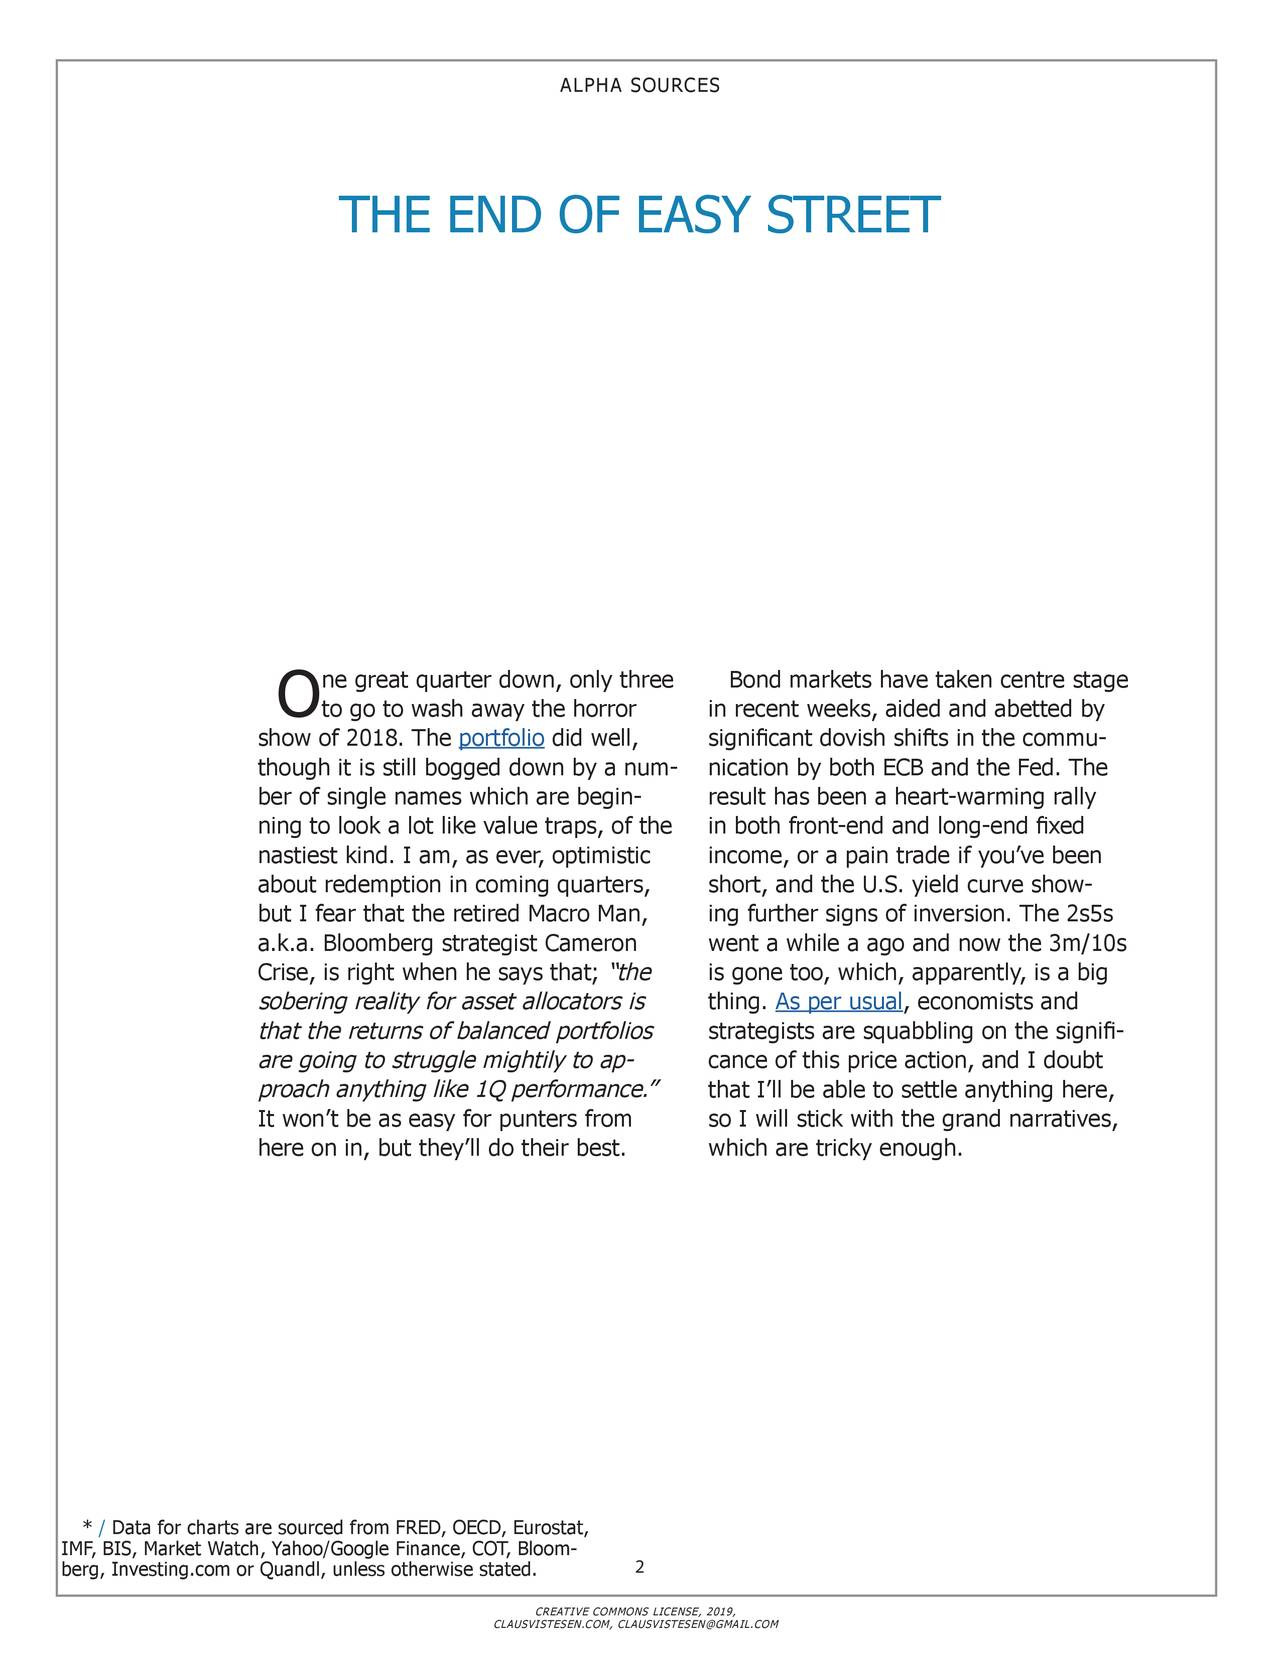 "THE END OF EASY STREET ne great quarter down, only three Bond markets have taken centre stage O to go to wash away the horror in recent weeks, aided and abetted by show of 2018. The portfolio did well, significant dovish shifts in the commu- though it is still bogged down by a num- nication by both ECB and the Fed. The ber of single names which are begin- result has been a heart-warming rally ning to look a lot like value traps, of thein both front-end and long-end fixed nastiest kind. I am, as ever, optimistic income, or a pain trade if you've been about redemption in coming quarters, short, and the U.S. yield curve show - but I fear that the retired Macro Man, ing further signs of inversion. The 2s5s a.k.a. Bloomberg strategist Cameron went a while a ago and now the 3m/10s Crise, is right when he says that;the is gone too, which, apparently, is a big sobering reality for asset allocators is thing. As per usual, economists and that the returns of balanced portfolios strategists are squabbling on the signifi- are going to struggle mightily to ap cance of this price action, and I doubt proach anything like 1Q performance."" that I'll be able to settle anything here, It won't be as easy for punters from so I will stick with the grand narratives, here on in, but they'll do their best. which are tricky enough. * / Data for charts are sourced from FRED, OECD, Eurostat, IMF, BIS, Market Watch, Yahoo/Google Finance, COT, Bloo2- berg, Investing.com or Quandl, unless otherwise stated. CREATIVE COMMONS LICENSE, 2019, CLAUSVISTESEN.COM, CLAUSVISTESEN@GMAIL.COM"